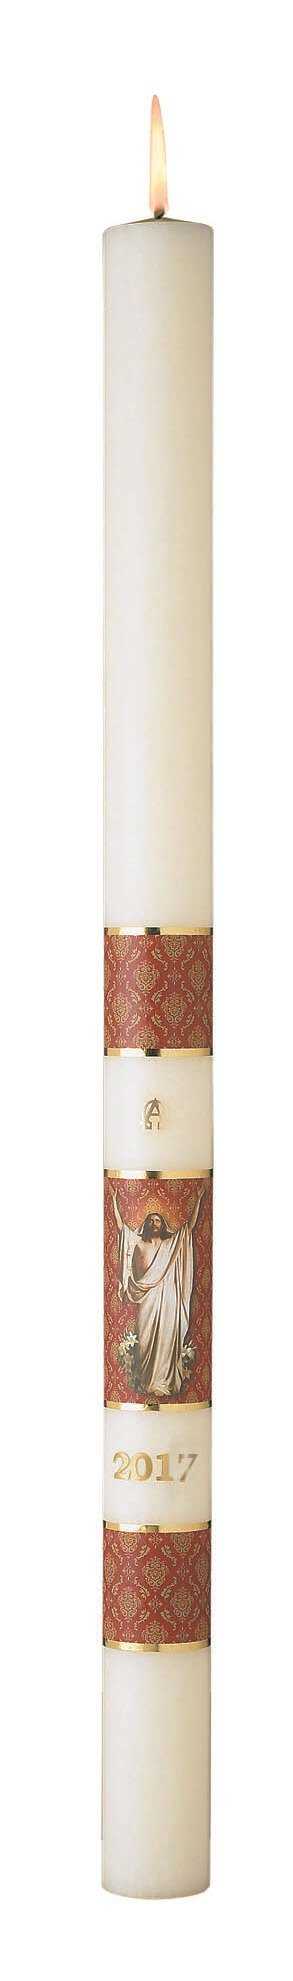 No 3 Risen Christ Paschal Candle